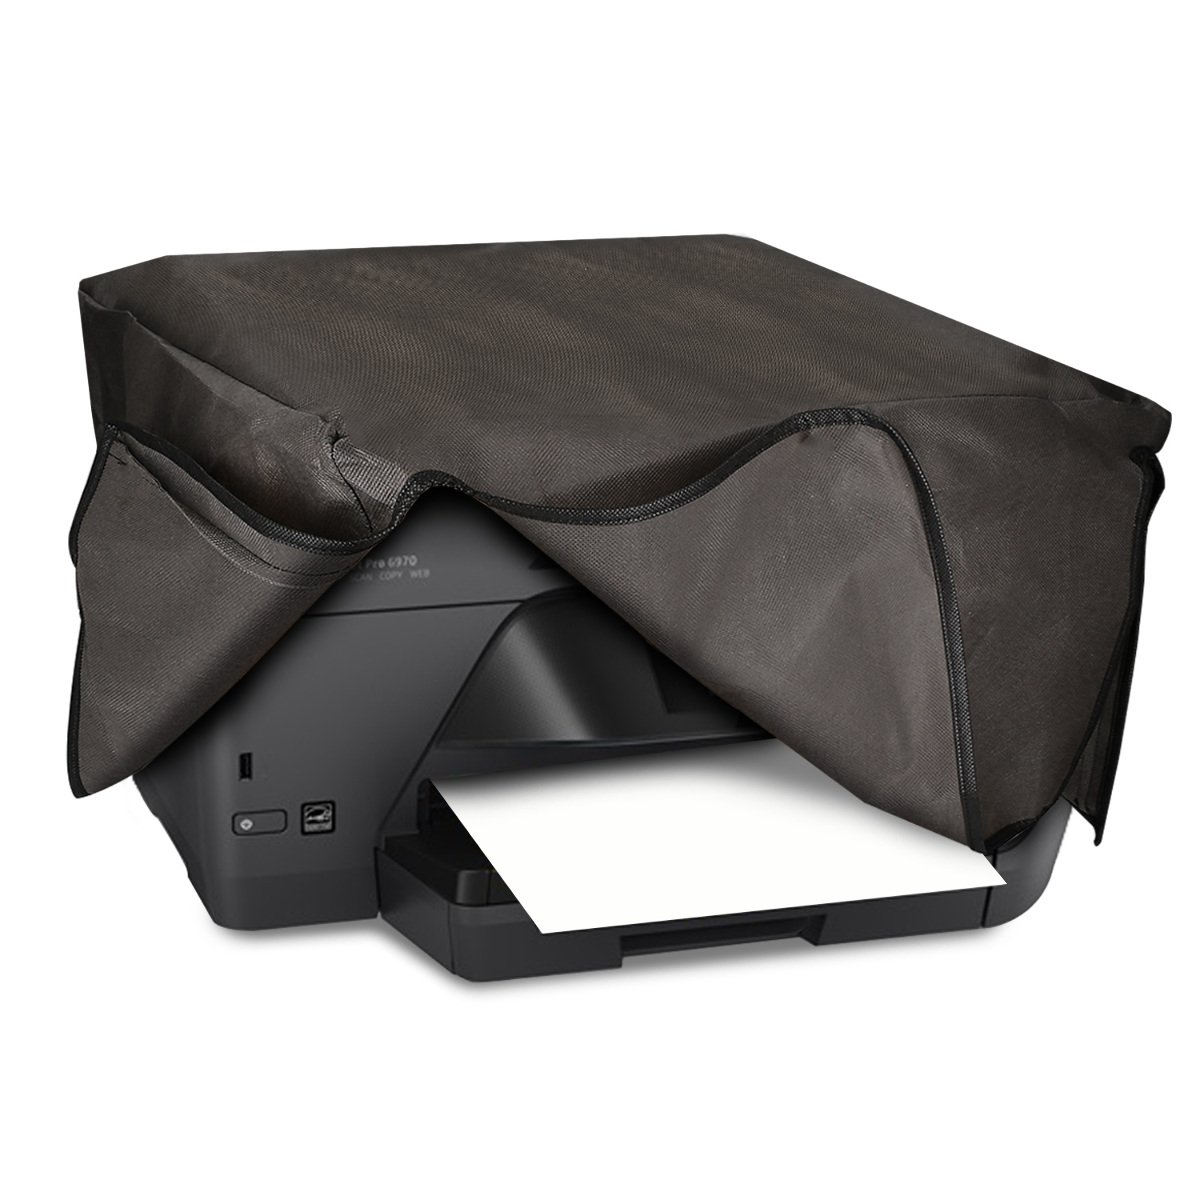 kwmobile Dust Cover for HP OfficeJet Pro 6000series - Printer Dust Protector in Dark Grey